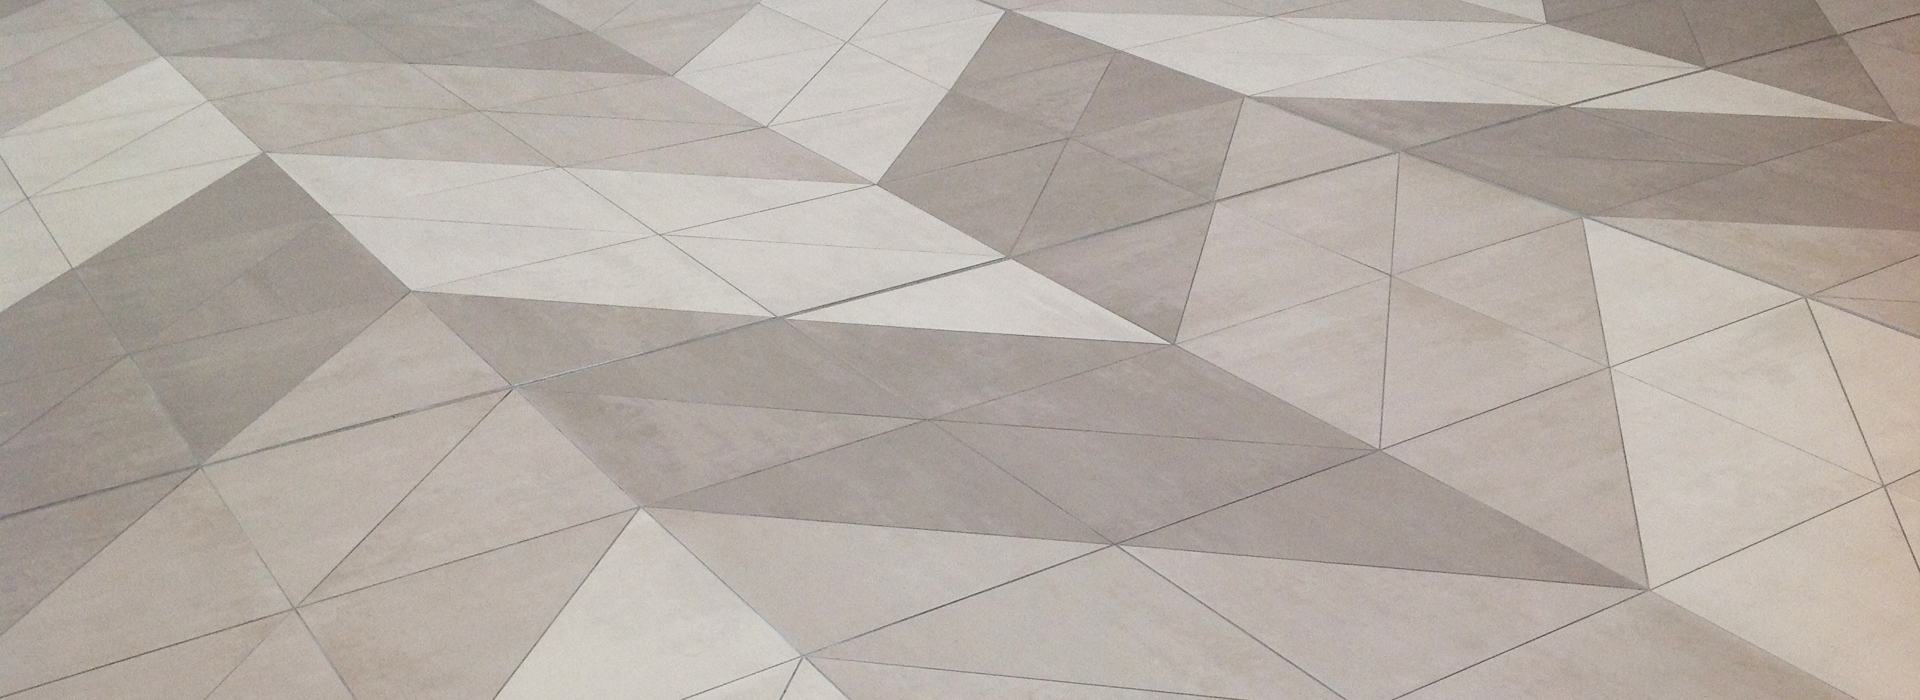 Mosa. Tiles. Ceramic tile solutions for architectural designs